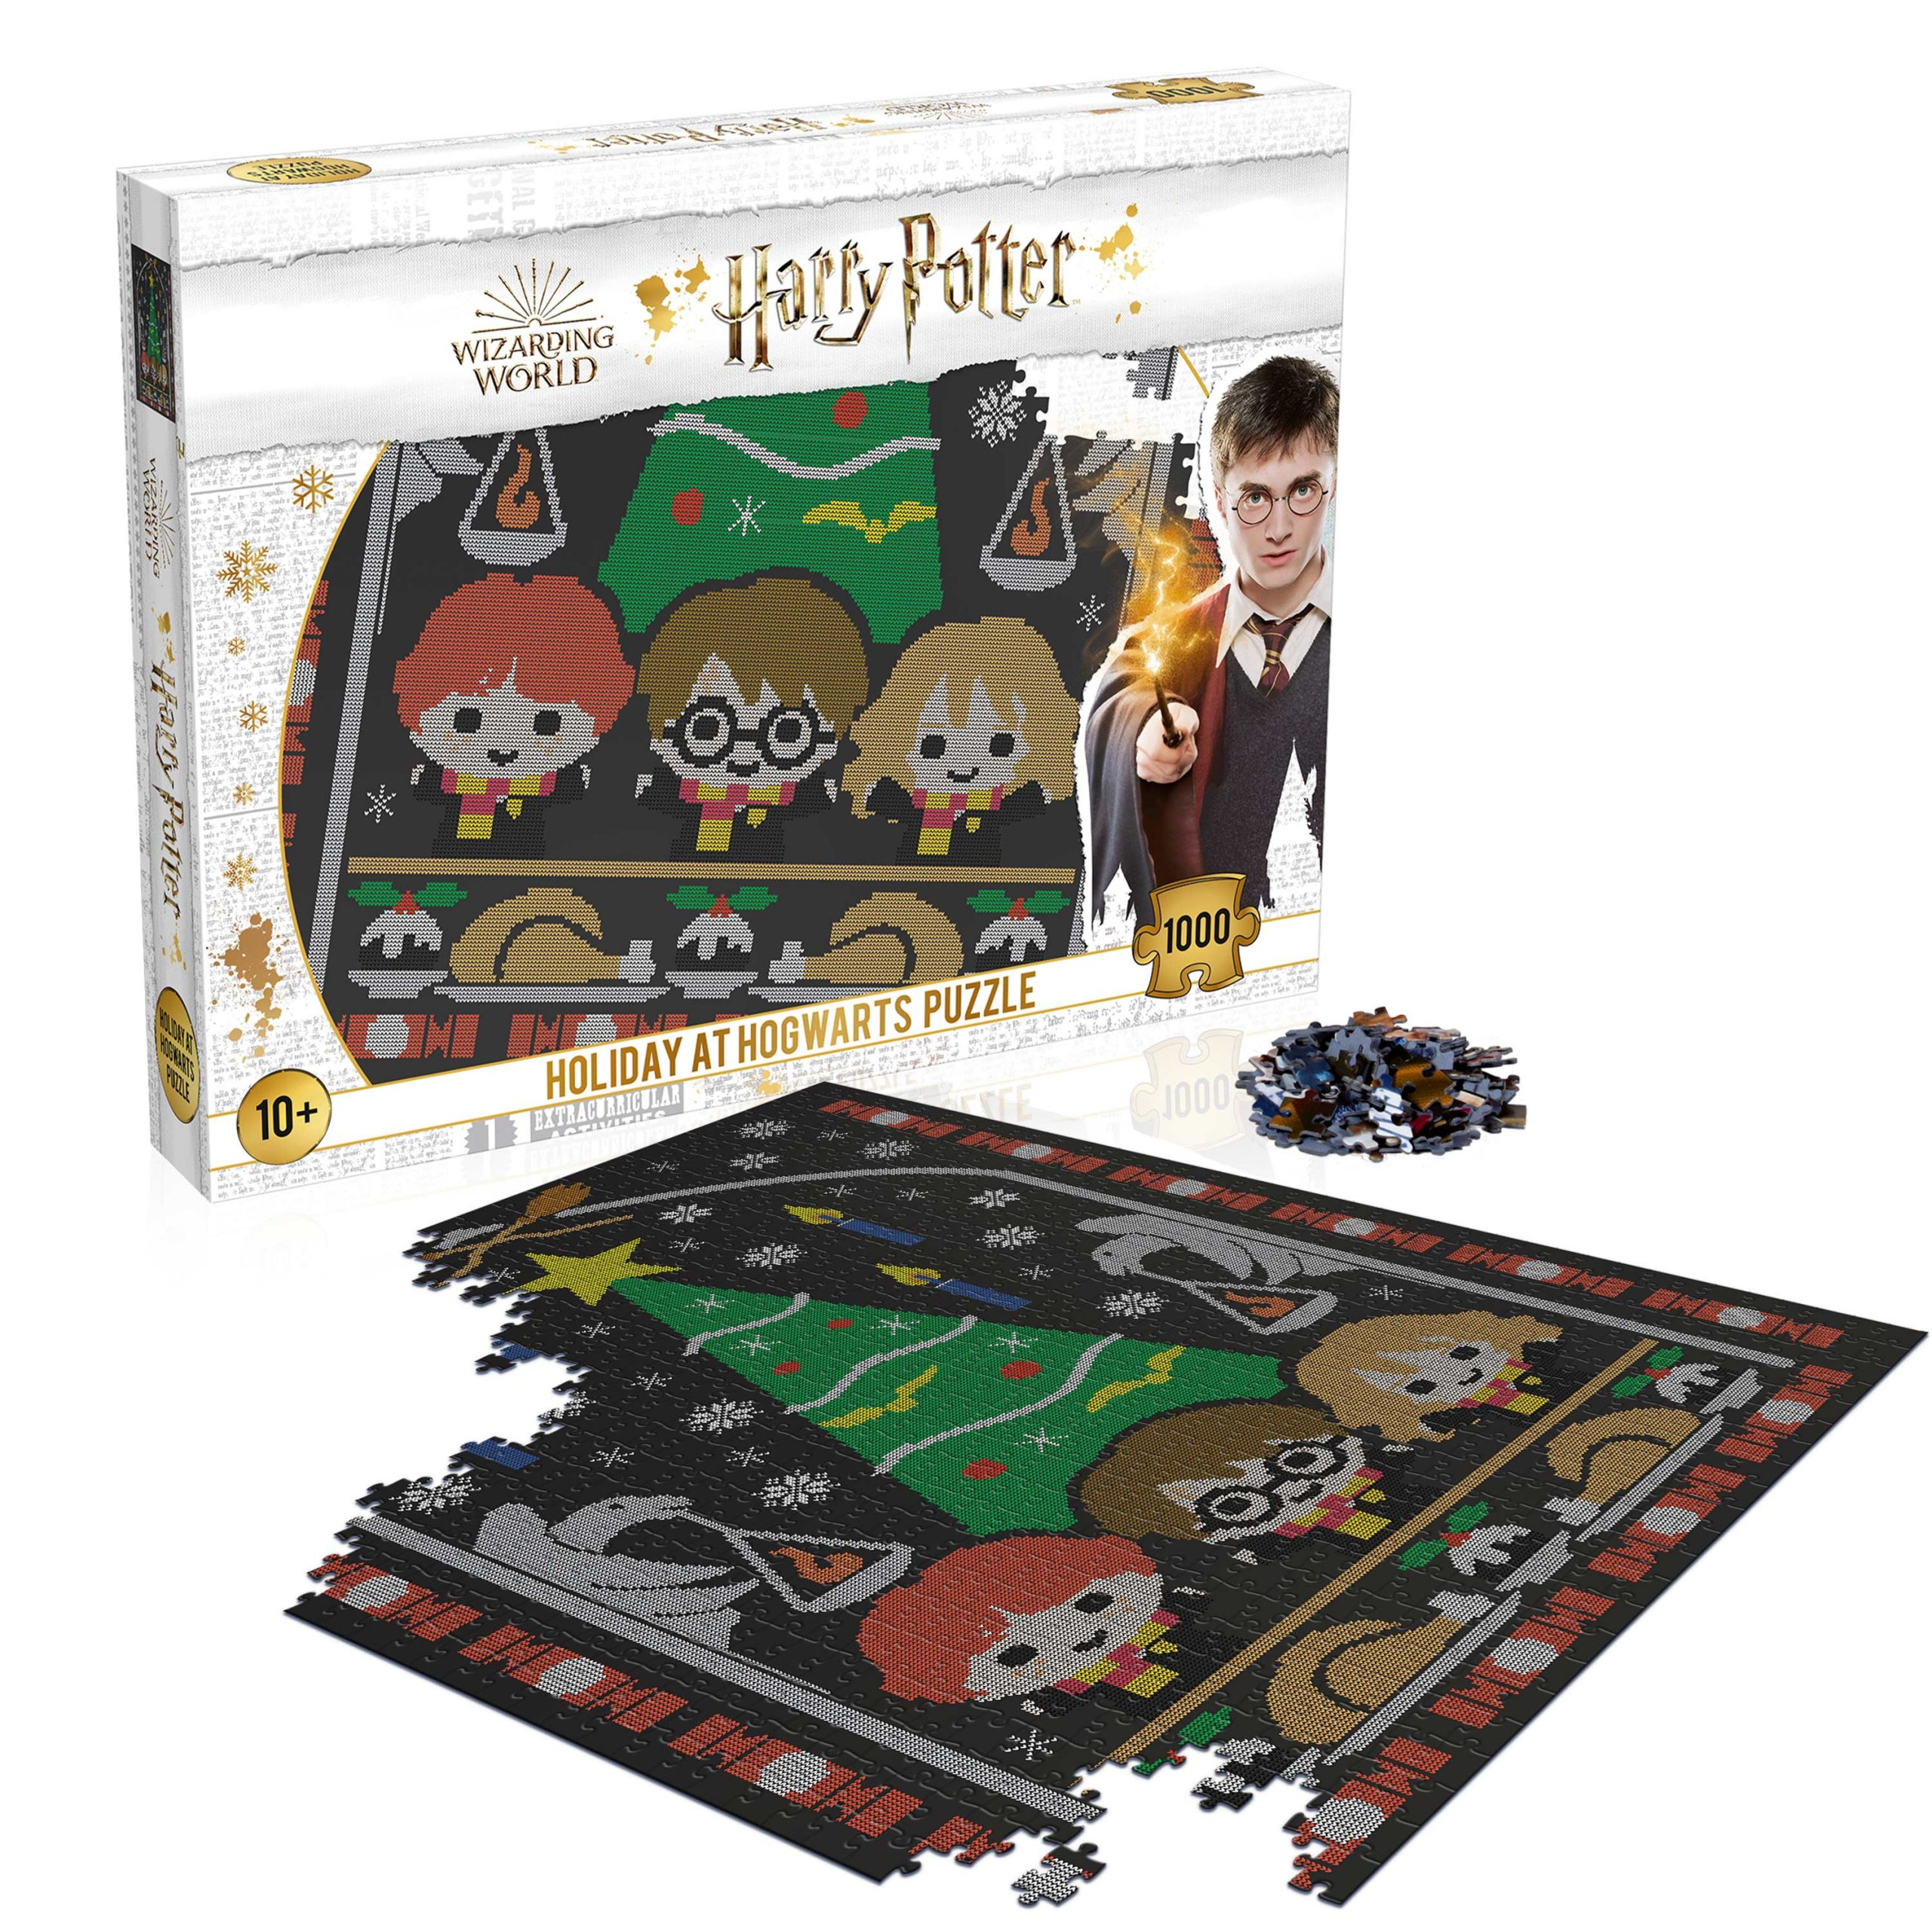 Harry Potter Holiday at Hogwarts 1000-Piece Puzzle